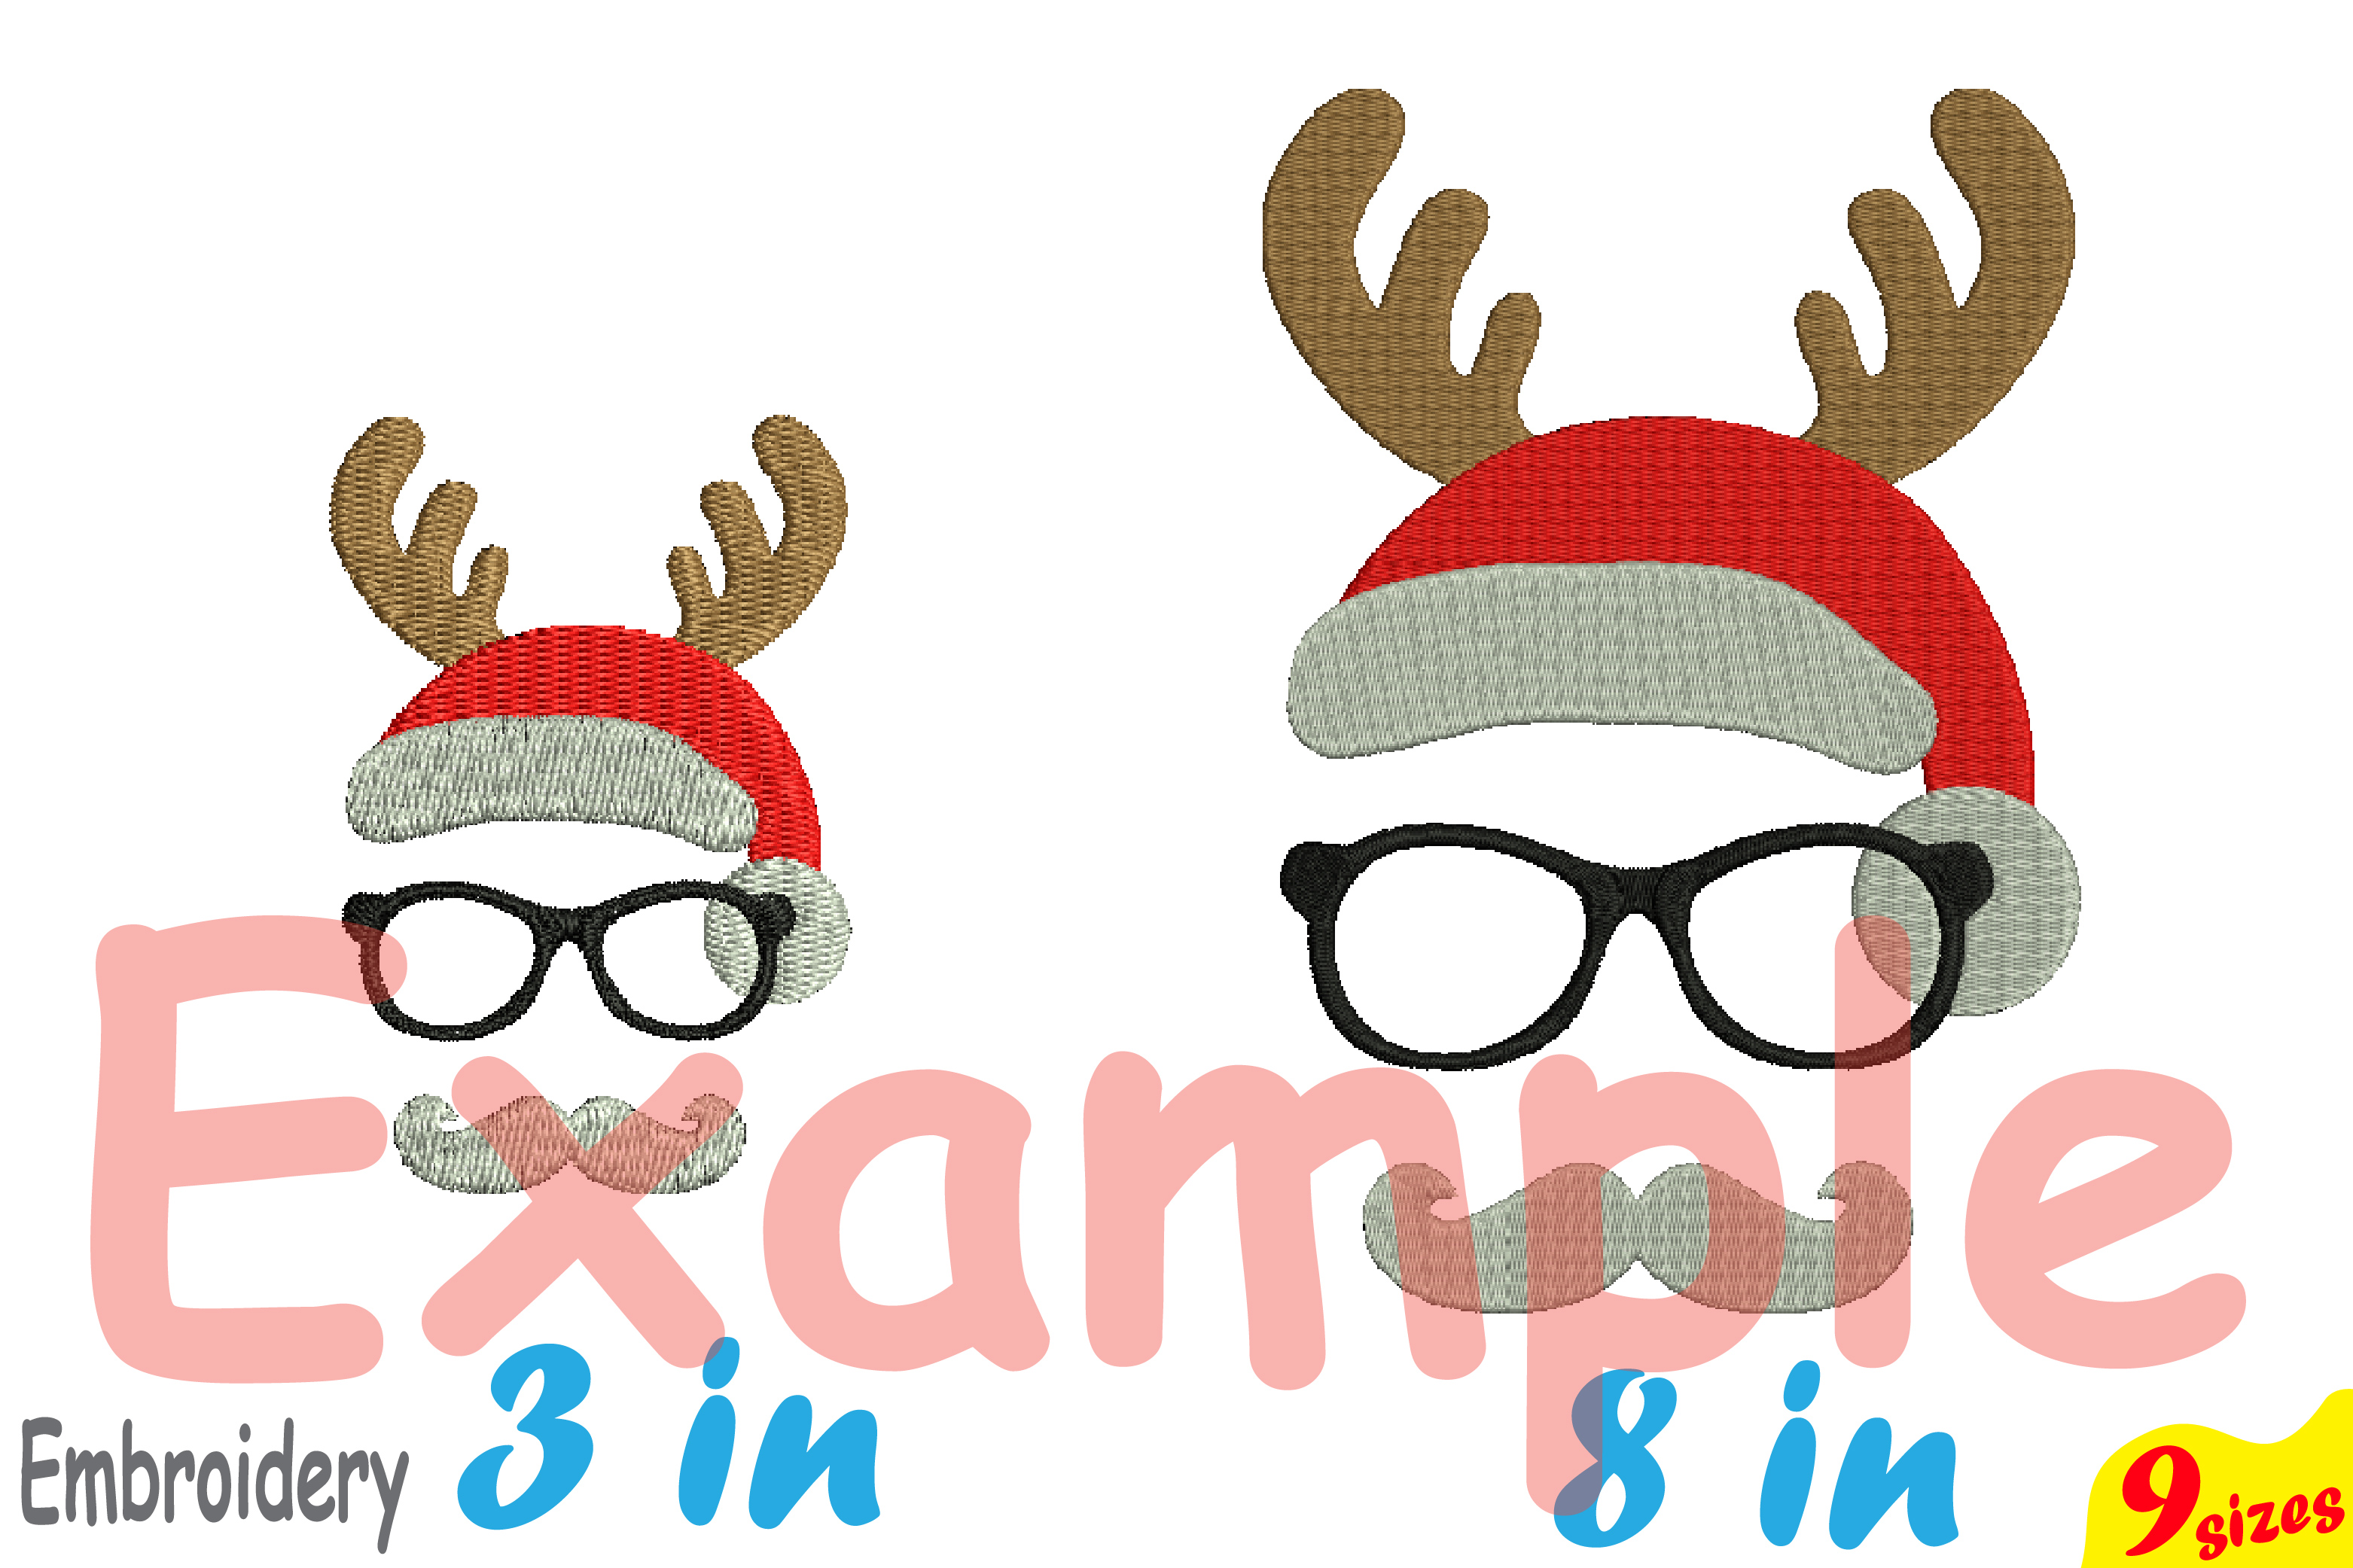 Christmas Designs For Embroidery Machine Instant Download Commercial Use Digital File 4x4 5x7 Hoop Icon Symbol Sign Strings Santa Claus 91b 50582 Embroidery Design Bundles